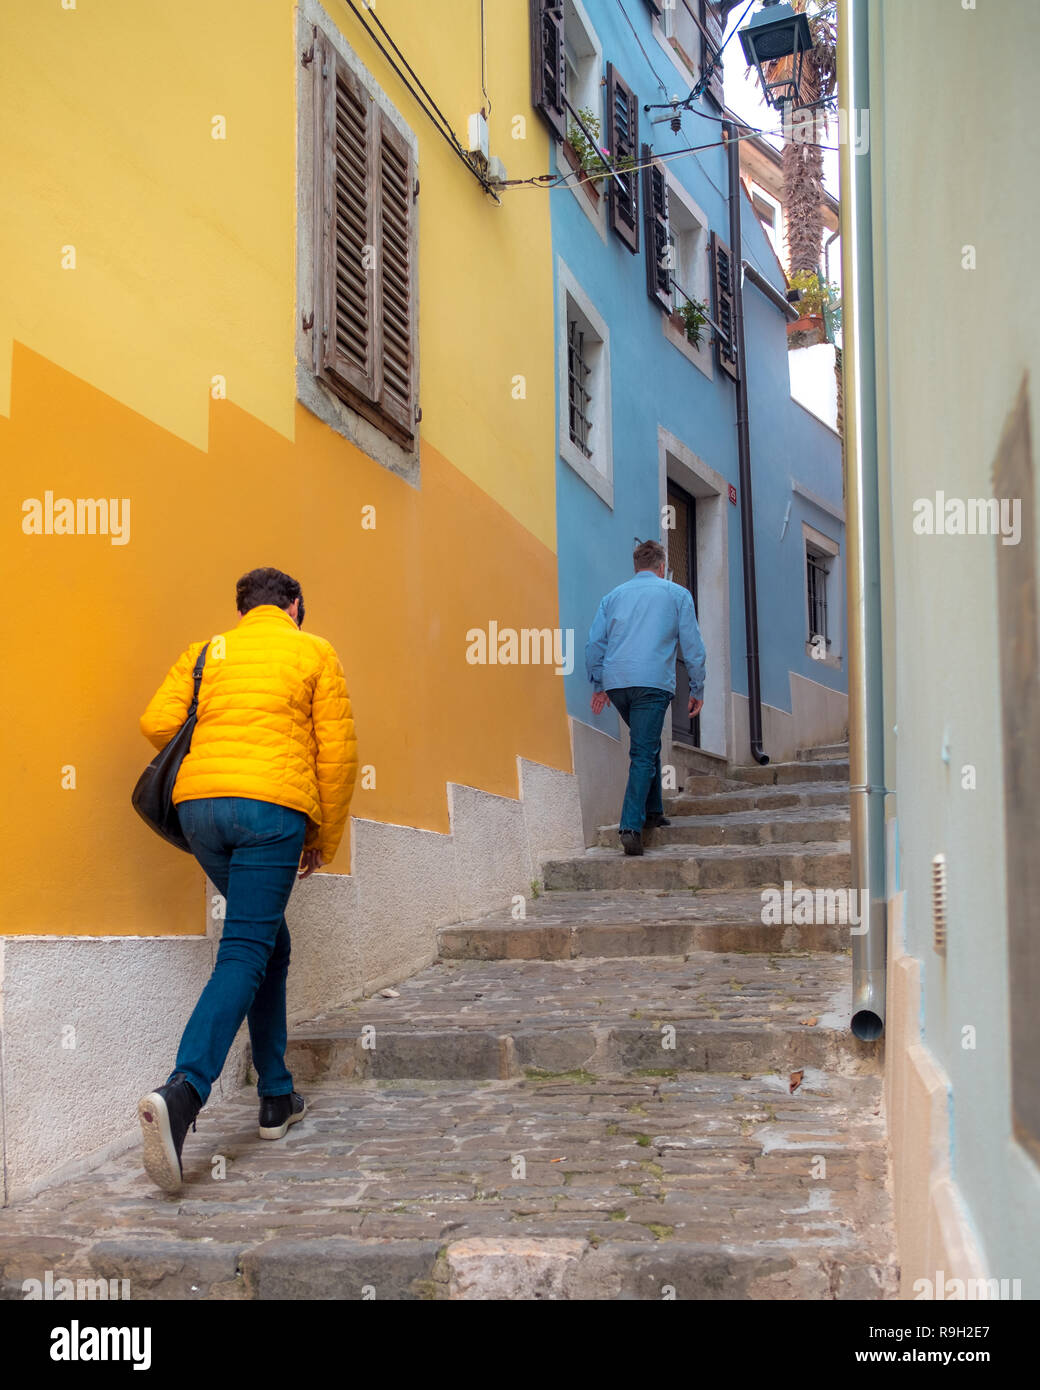 colorful-street-staircase-of-the-istrian-town-of-piran-with-2-walkers-with-jackets-matching-wall-colors-R9H2E7.jpg